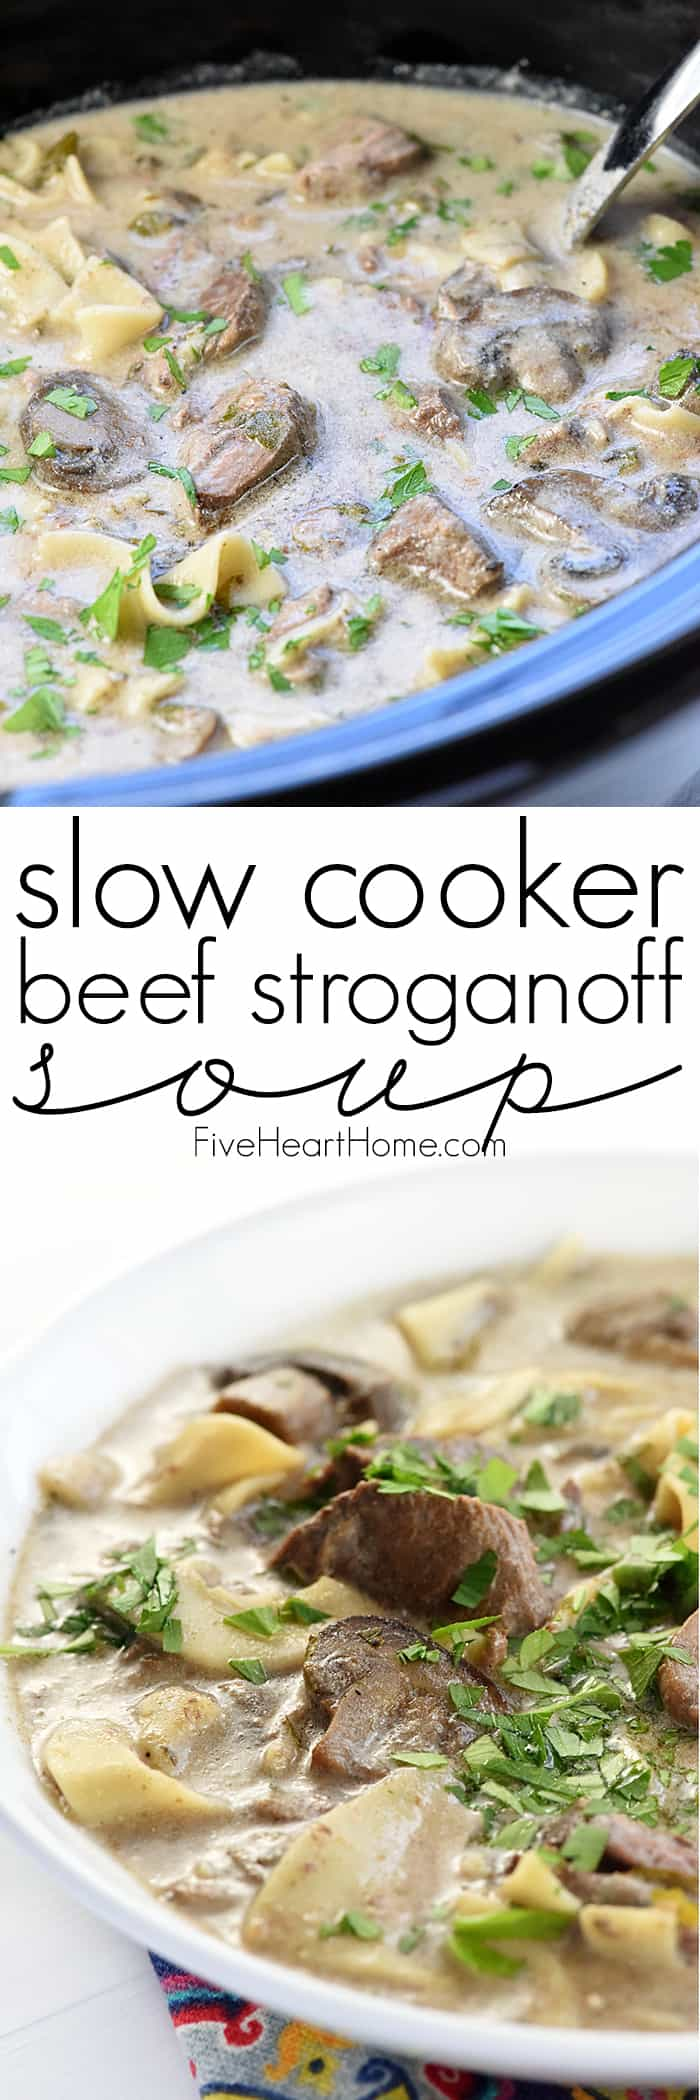 Slow Cooker Beef Stroganoff Soup Collage with Text Overlay